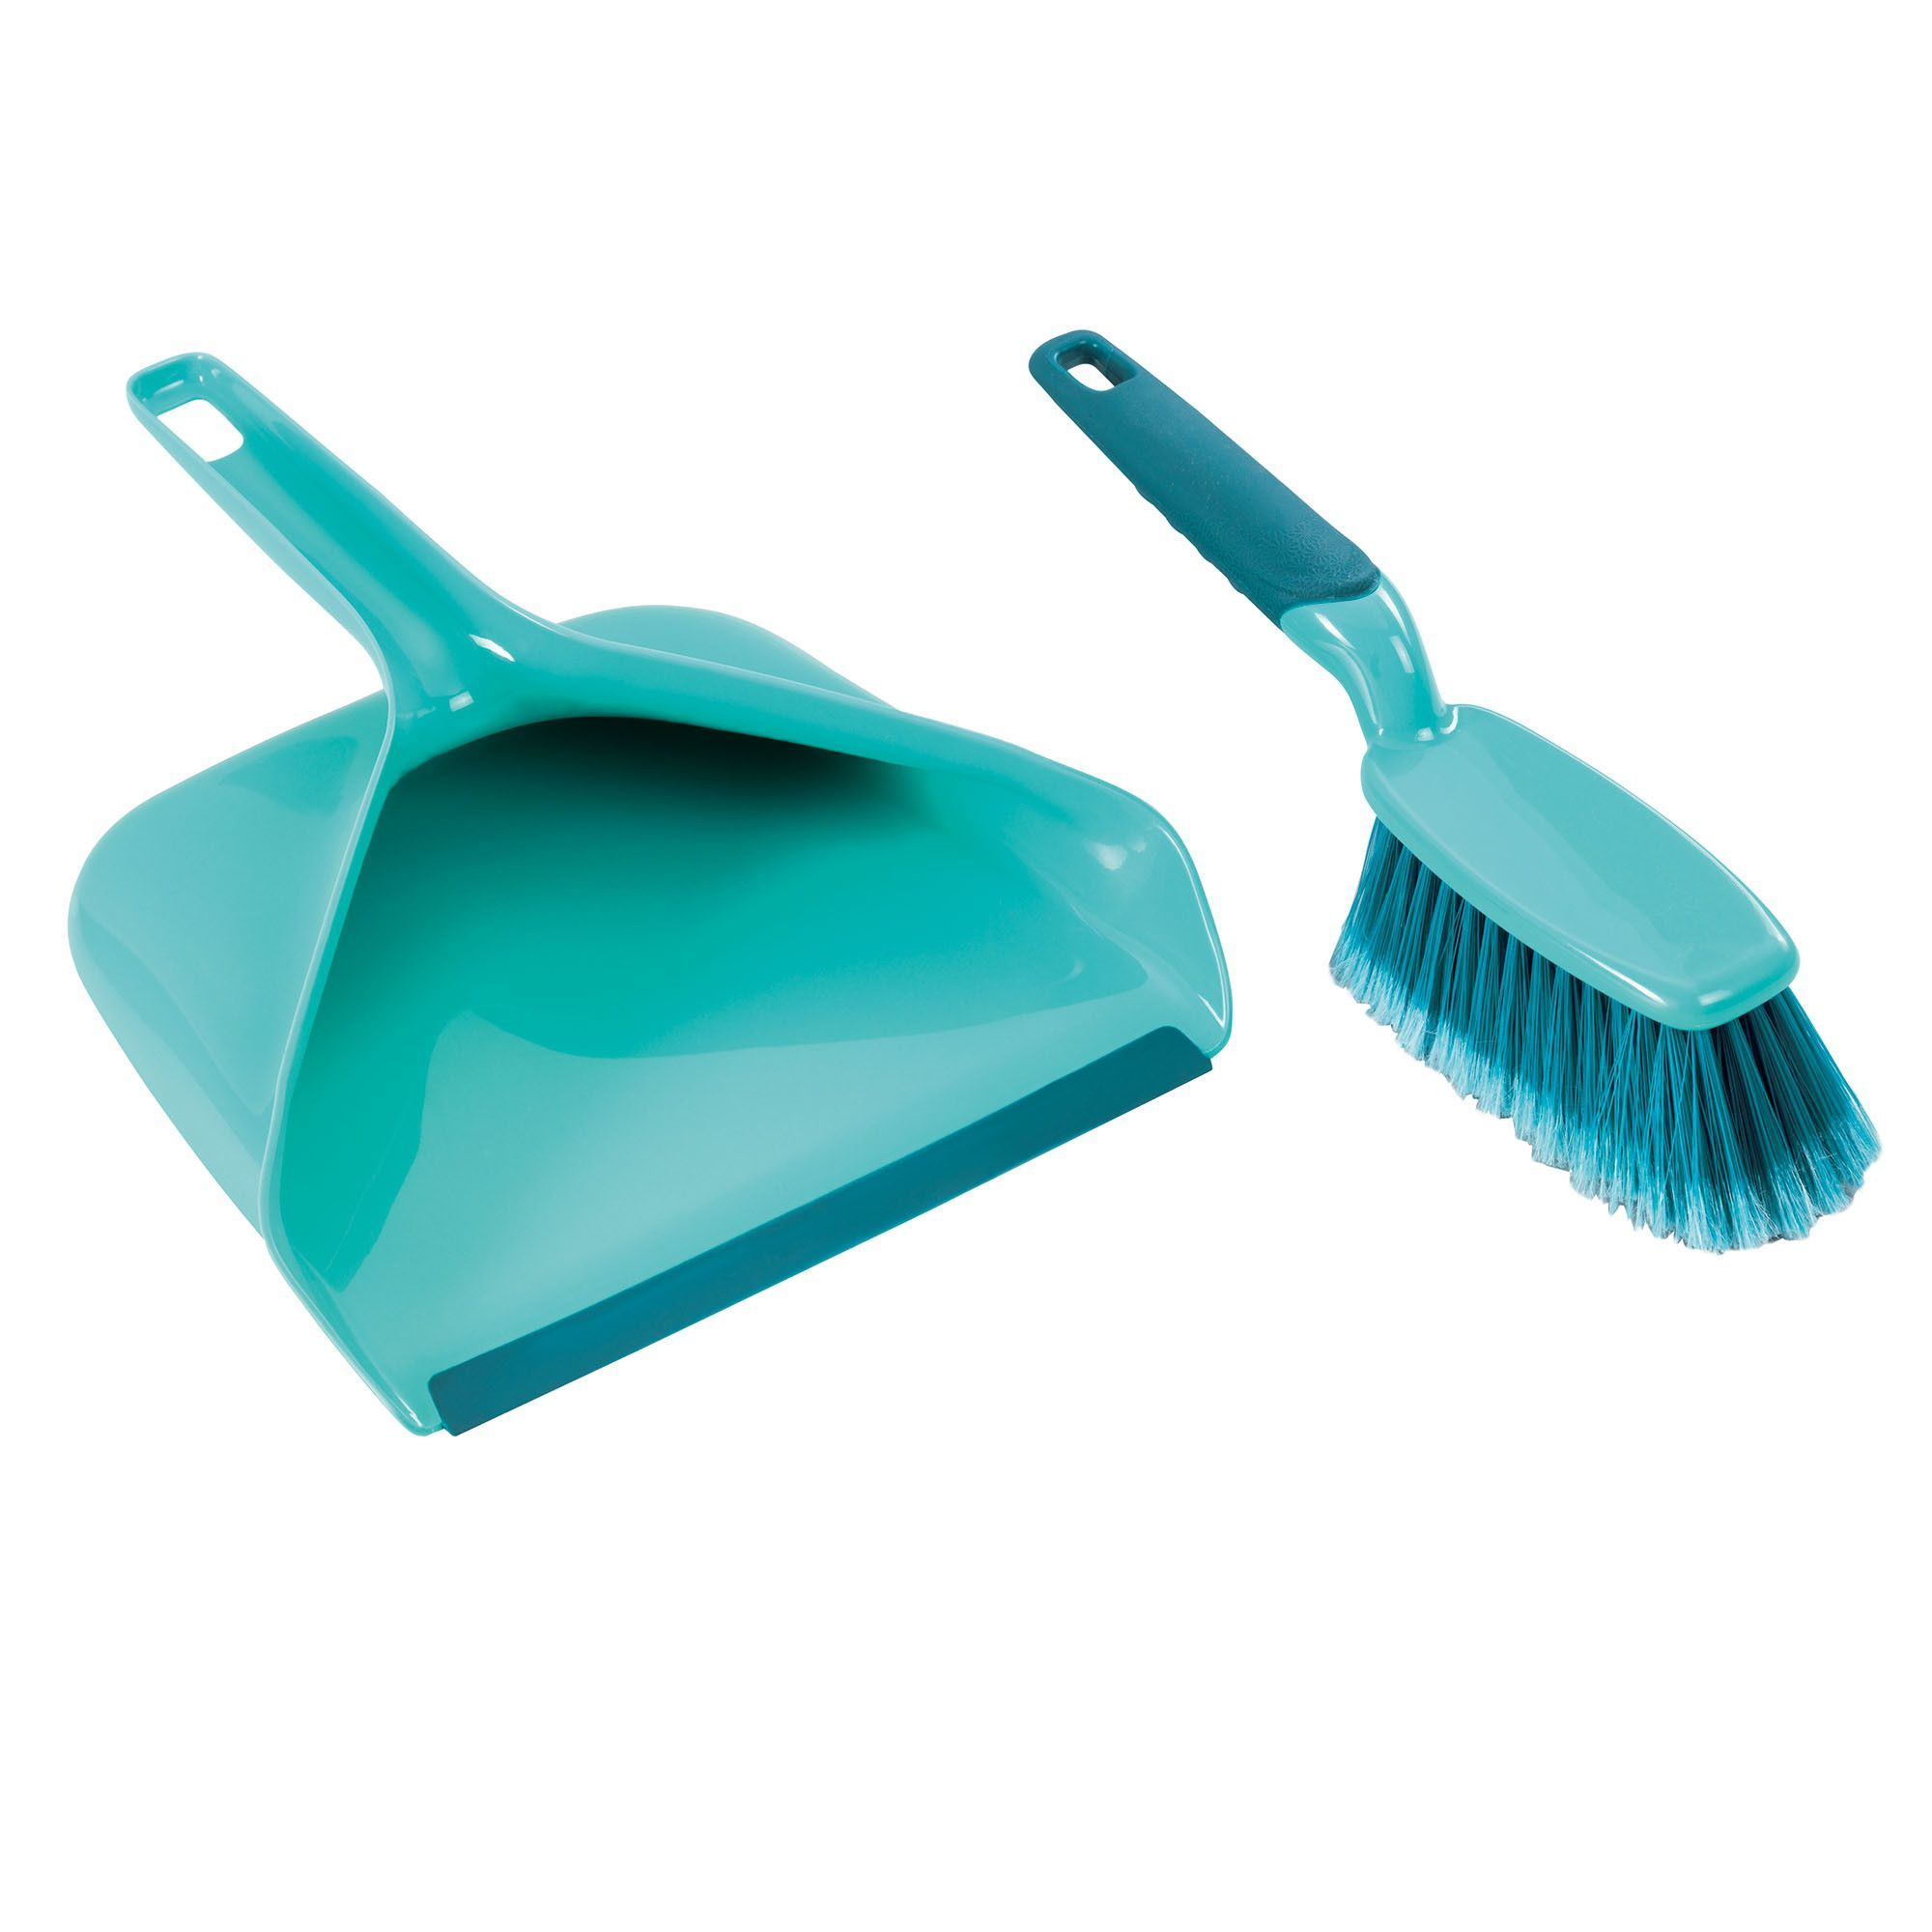 Features Comfortable Grip Deep Dustpan Pocket To Hold Dirt And Keep It From Spilling Out Dustpan With Ext Broom And Dustpan Broom Dustpans And Brushes